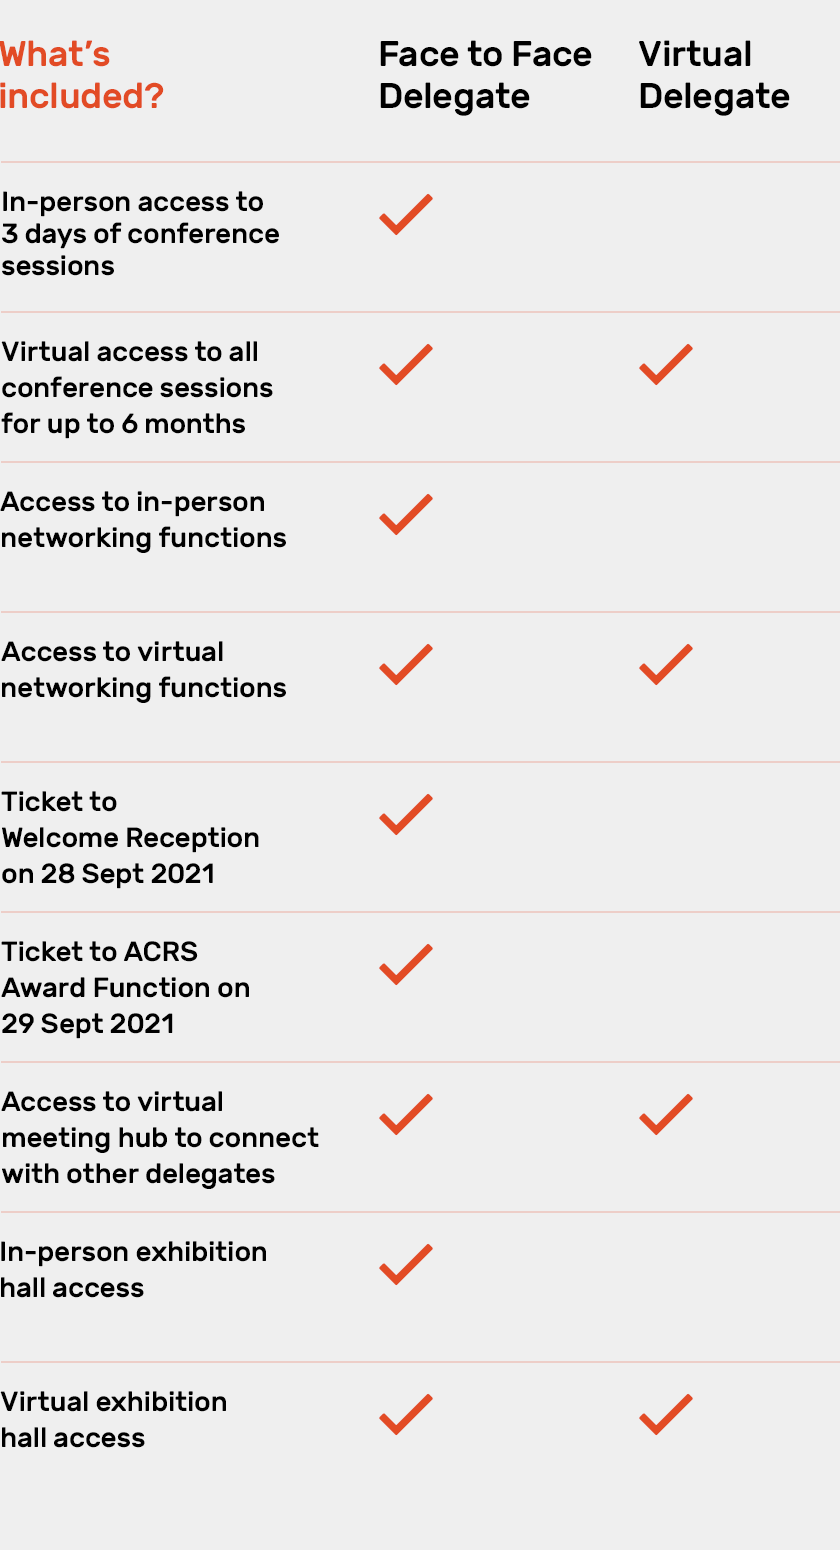 A table showing the difference between Face-to-Face and Virtual attendance.